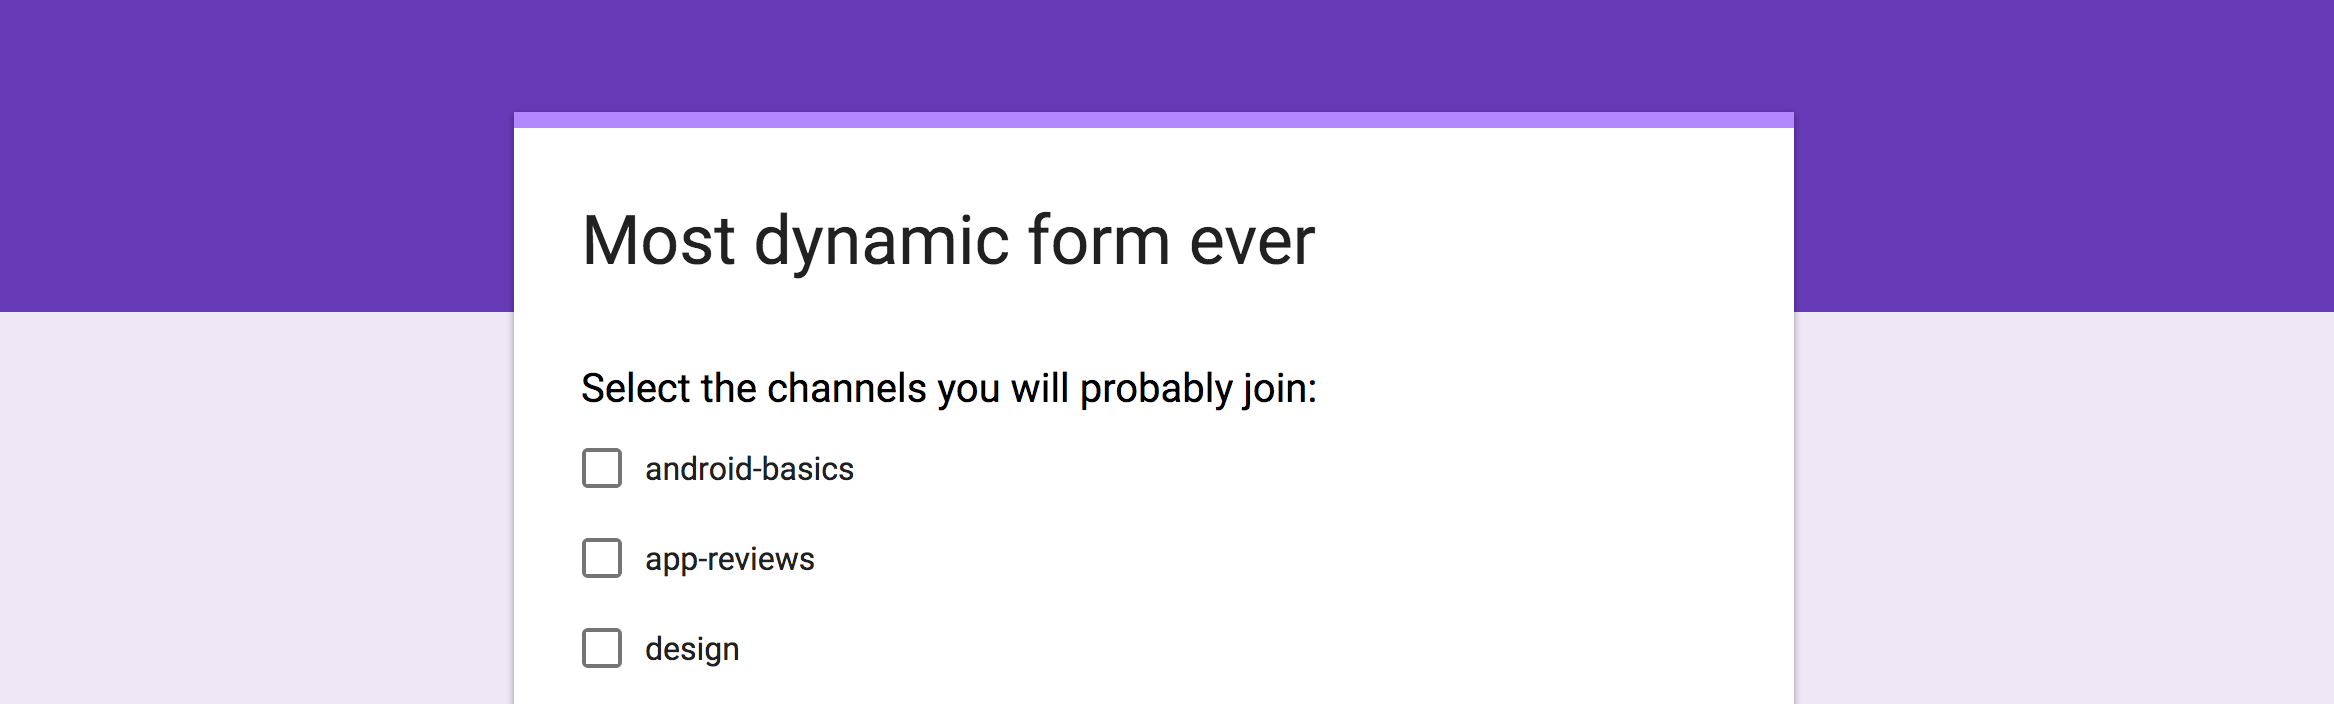 Google Forms: Dynamic answers in Questions - Pavlos-Petros